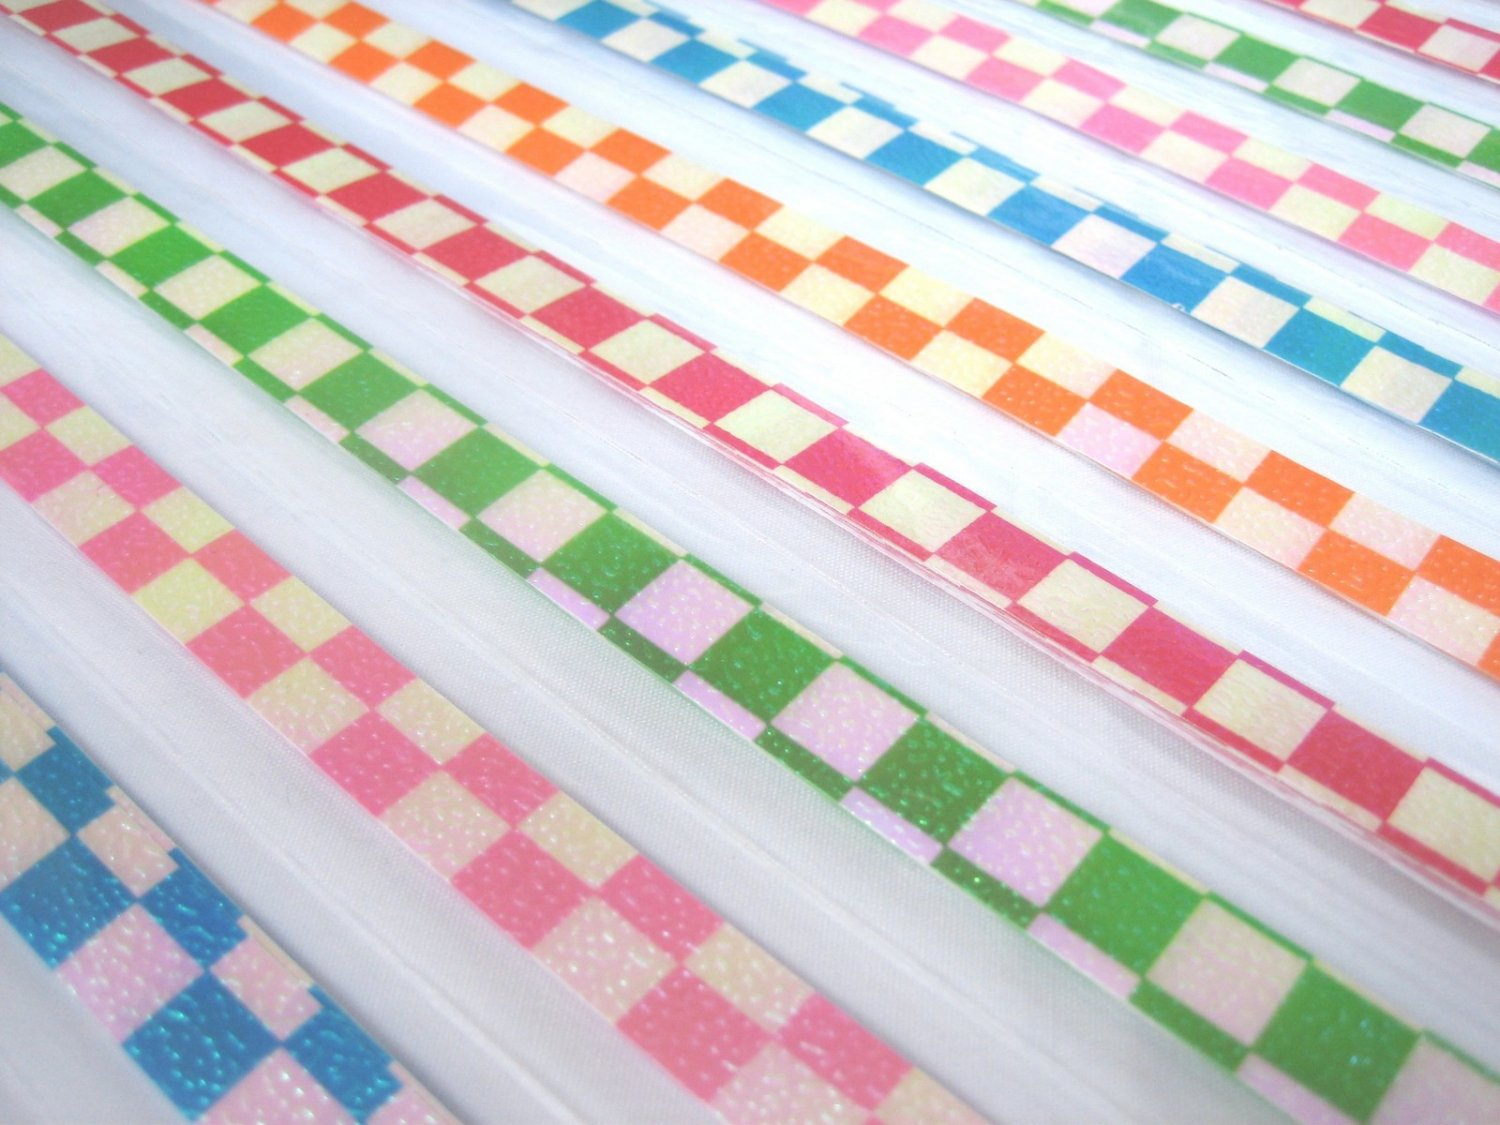 80pcs Country Check Mix Colour Origami Folding Lucky Star Paper Strips 80A